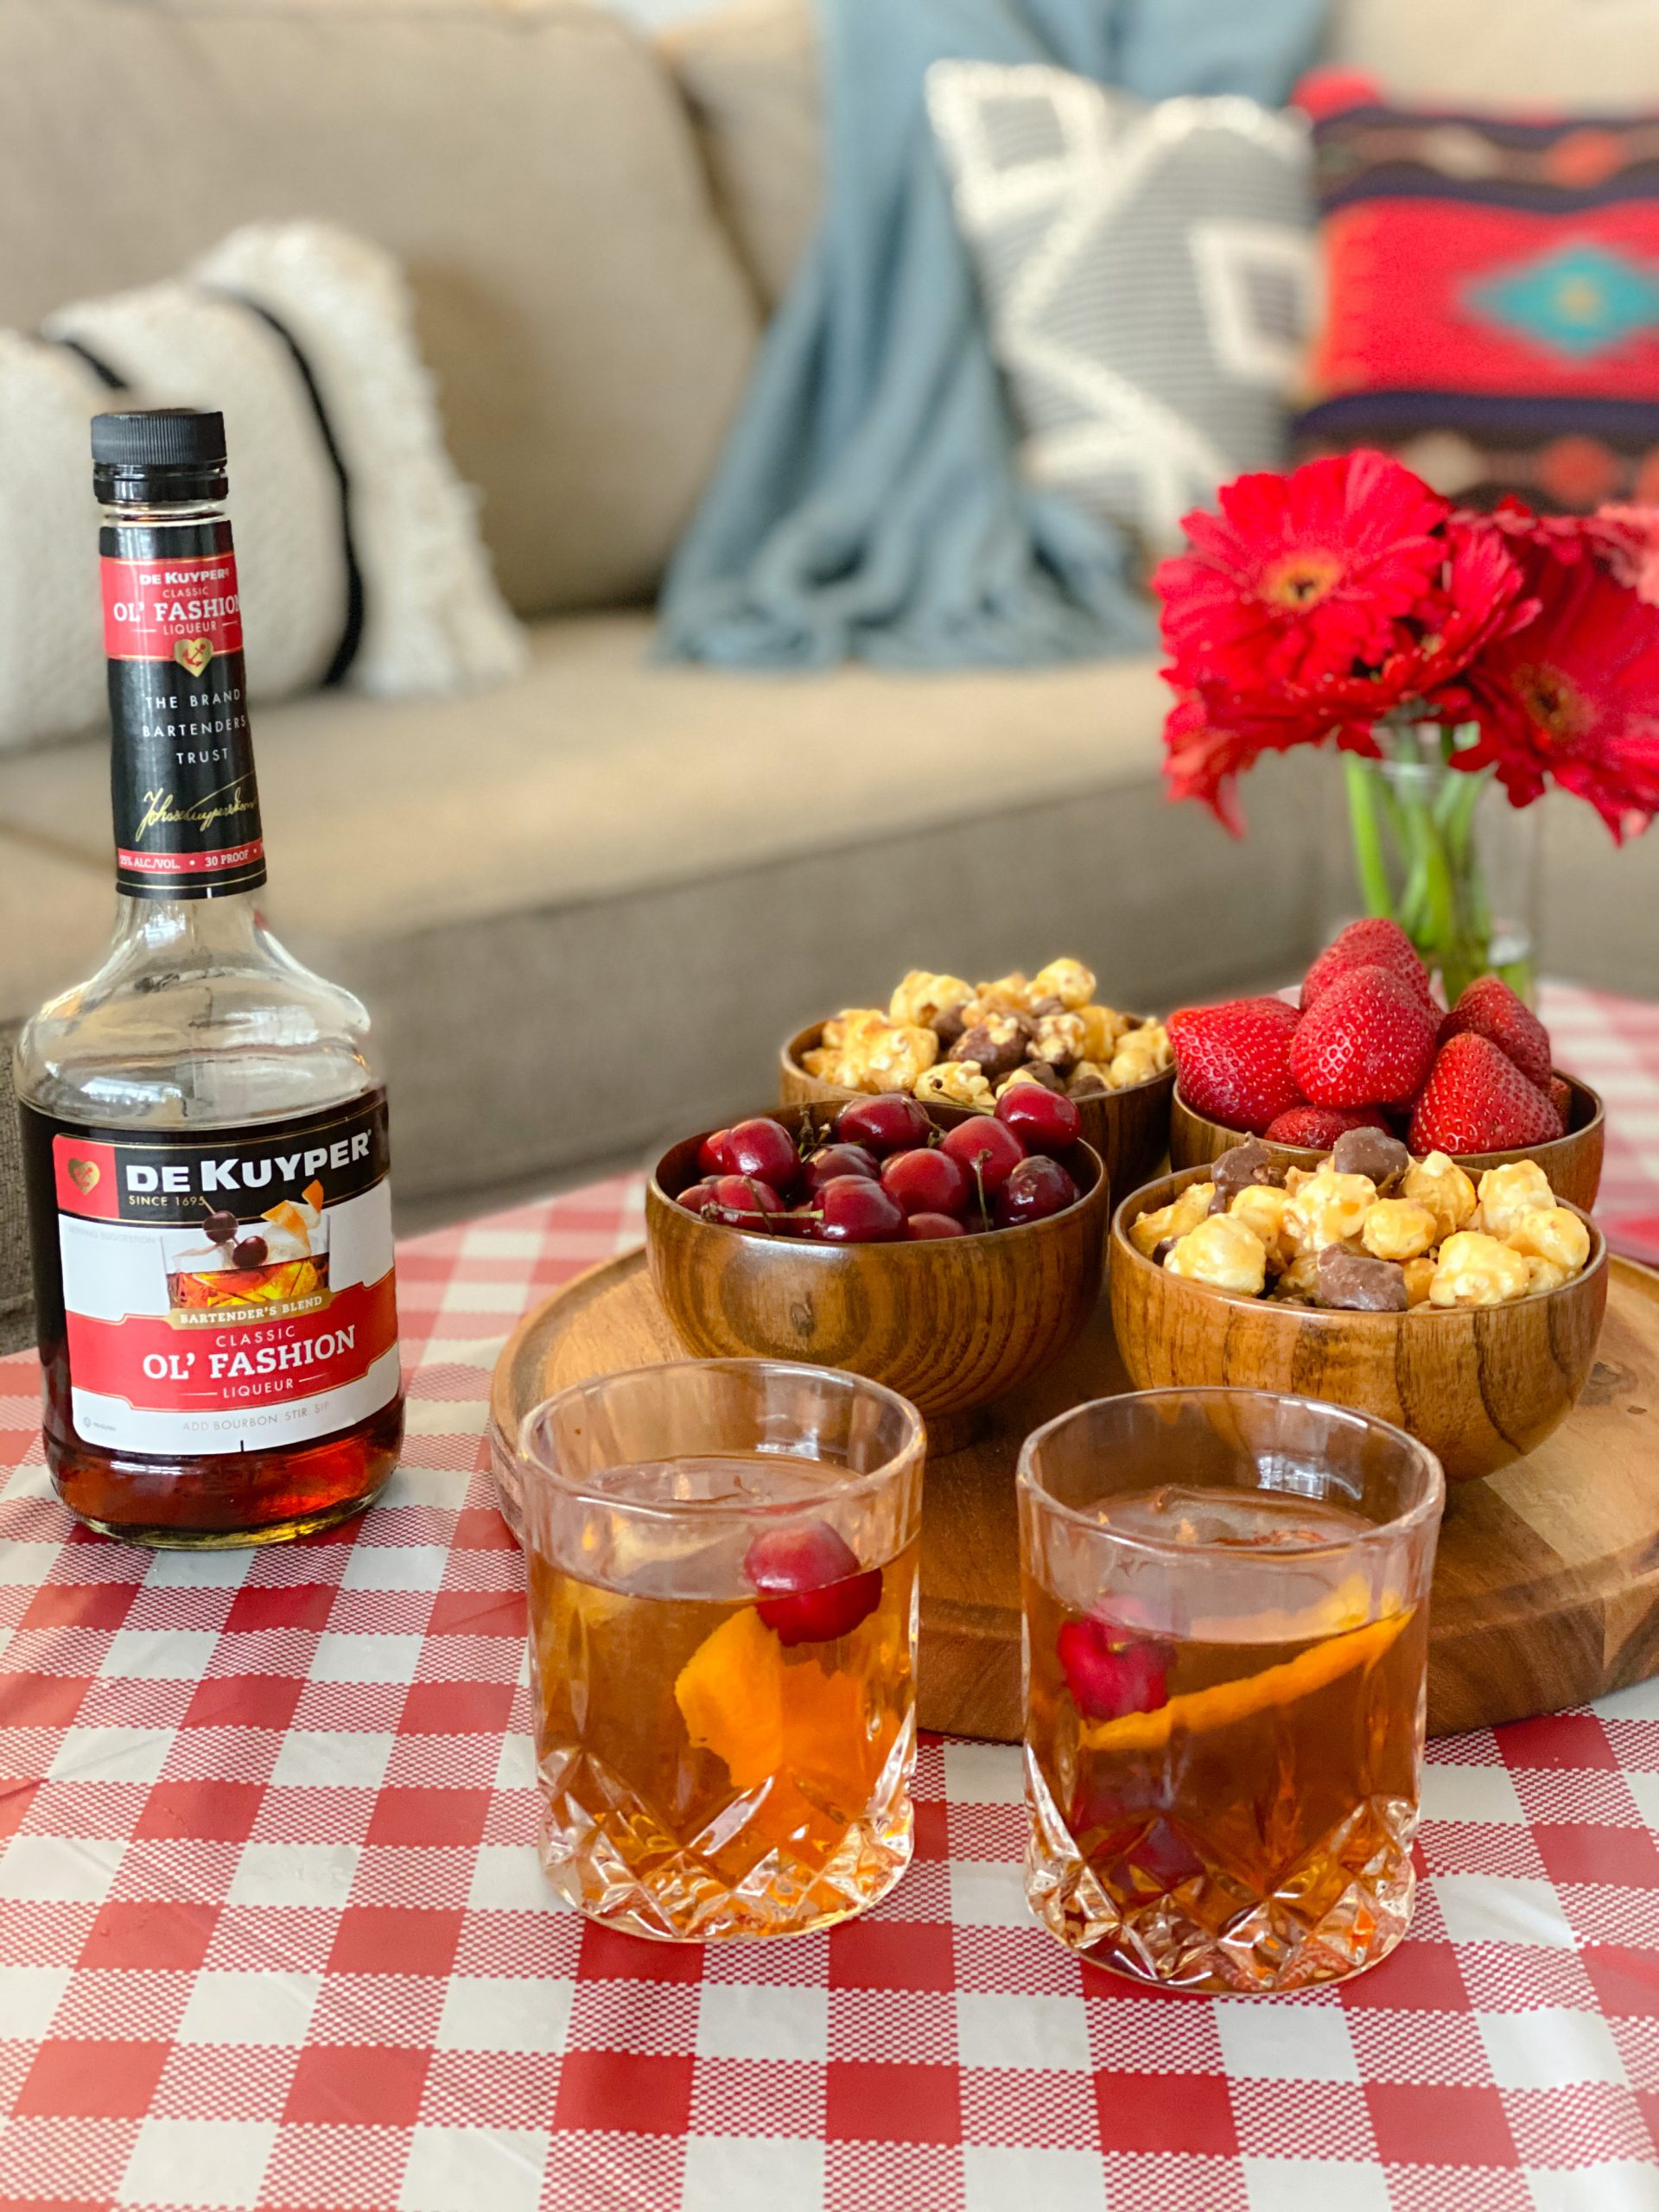 old fashioned drinks and liqueur on top of red and white check tablecloth next to wooden tray with wooden bowls filled with popcorn, cherries and strawberries next to glass of red daises